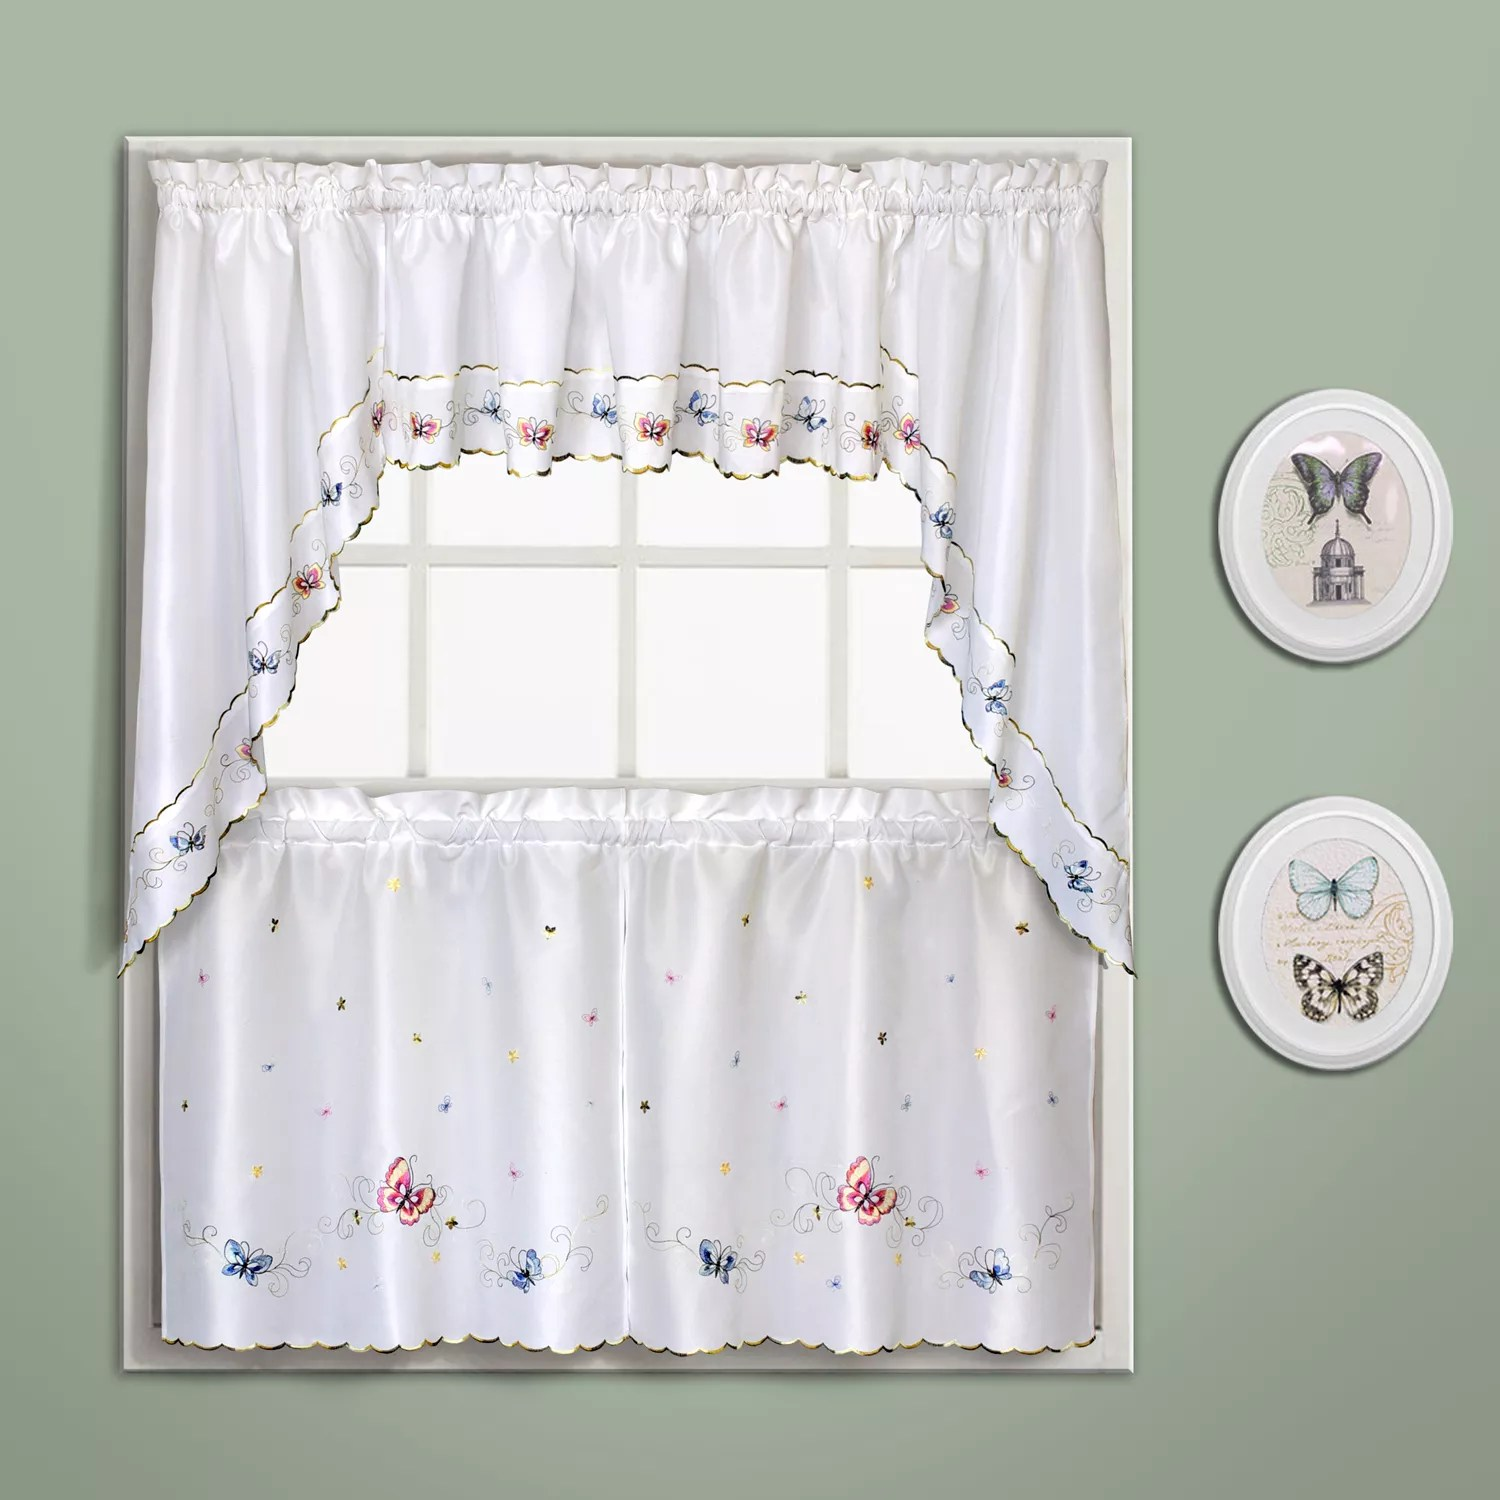 United Curtain Co Butterfly Swag Tier Kitchen Curtains